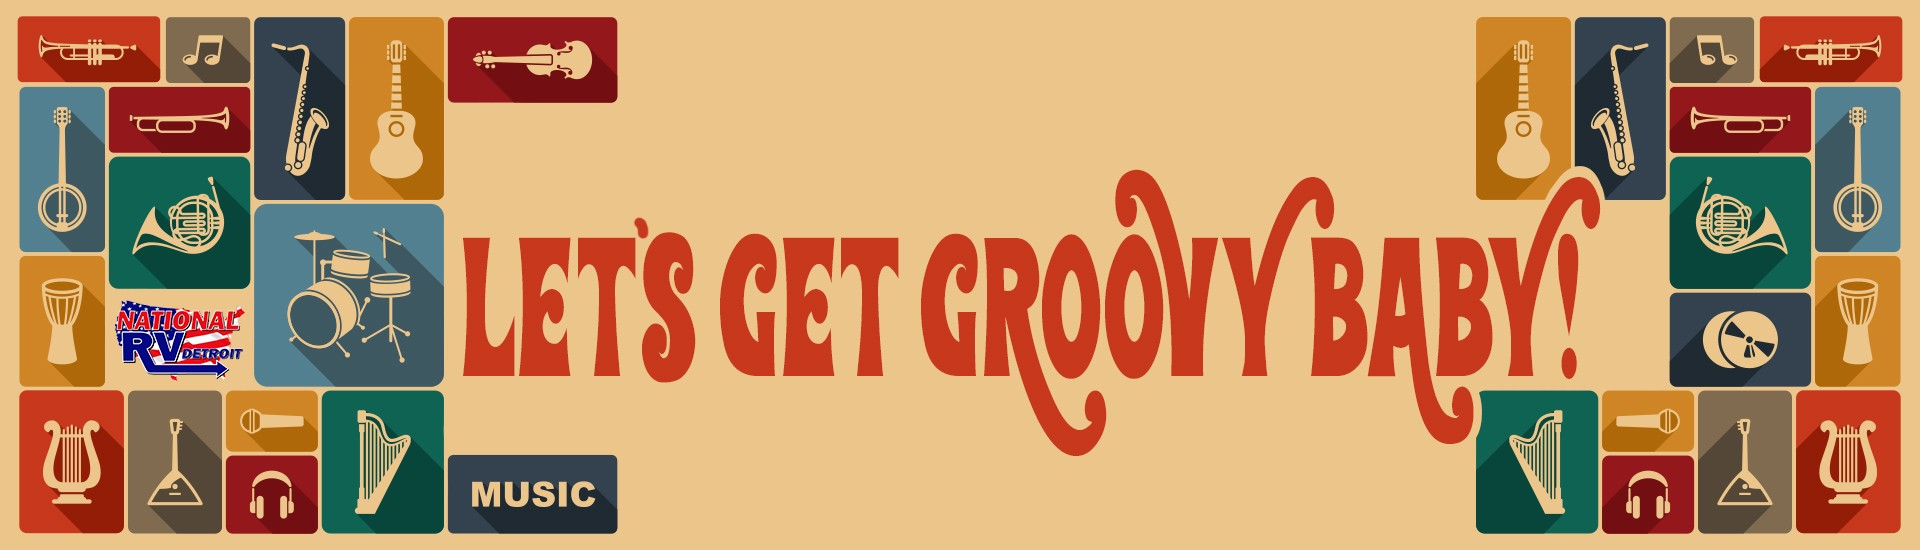 lets-get-groovy-baby